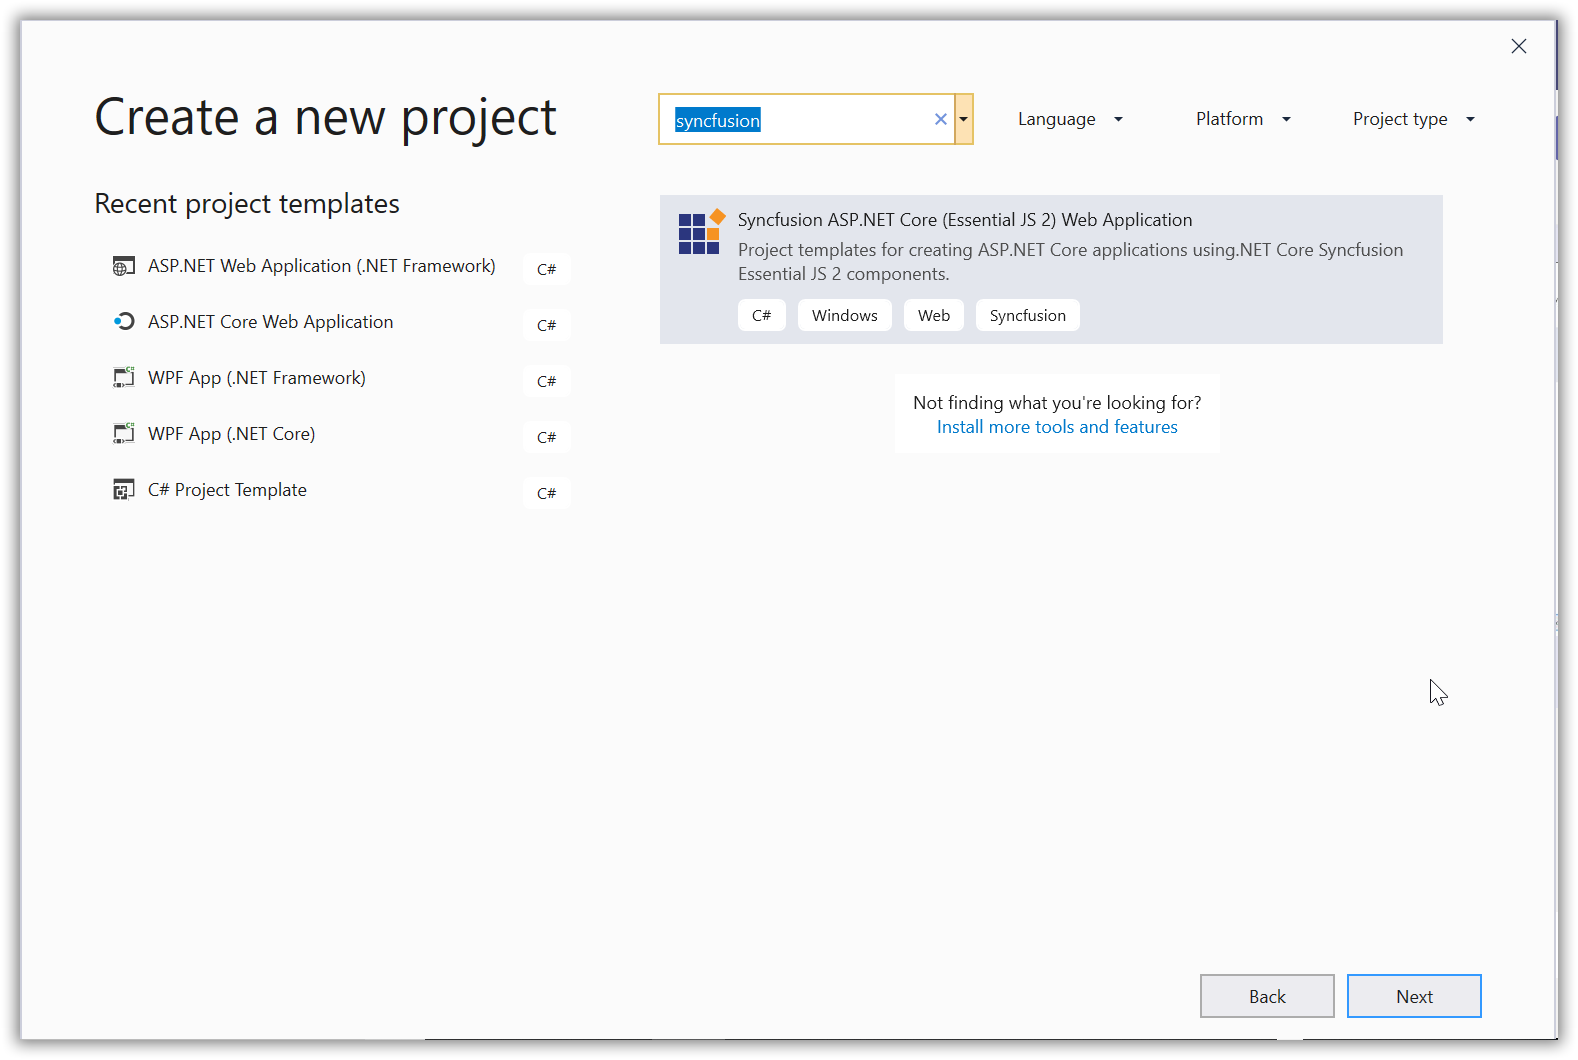 Syncfusion ASP.NET Core Extensions new project creation